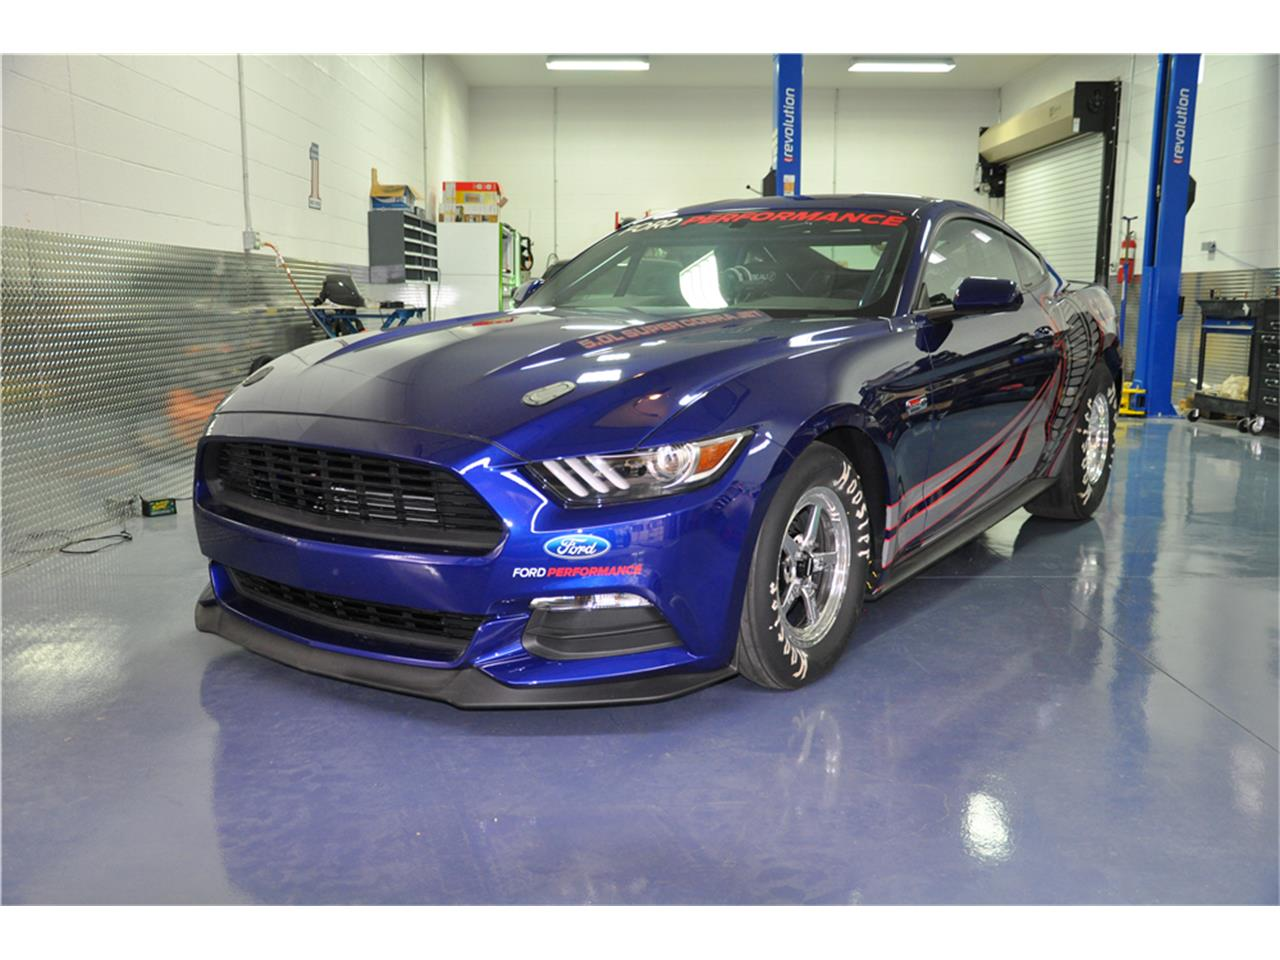 Large Picture of 2016 Mustang located in Scottsdale Arizona Auction Vehicle - MGBW